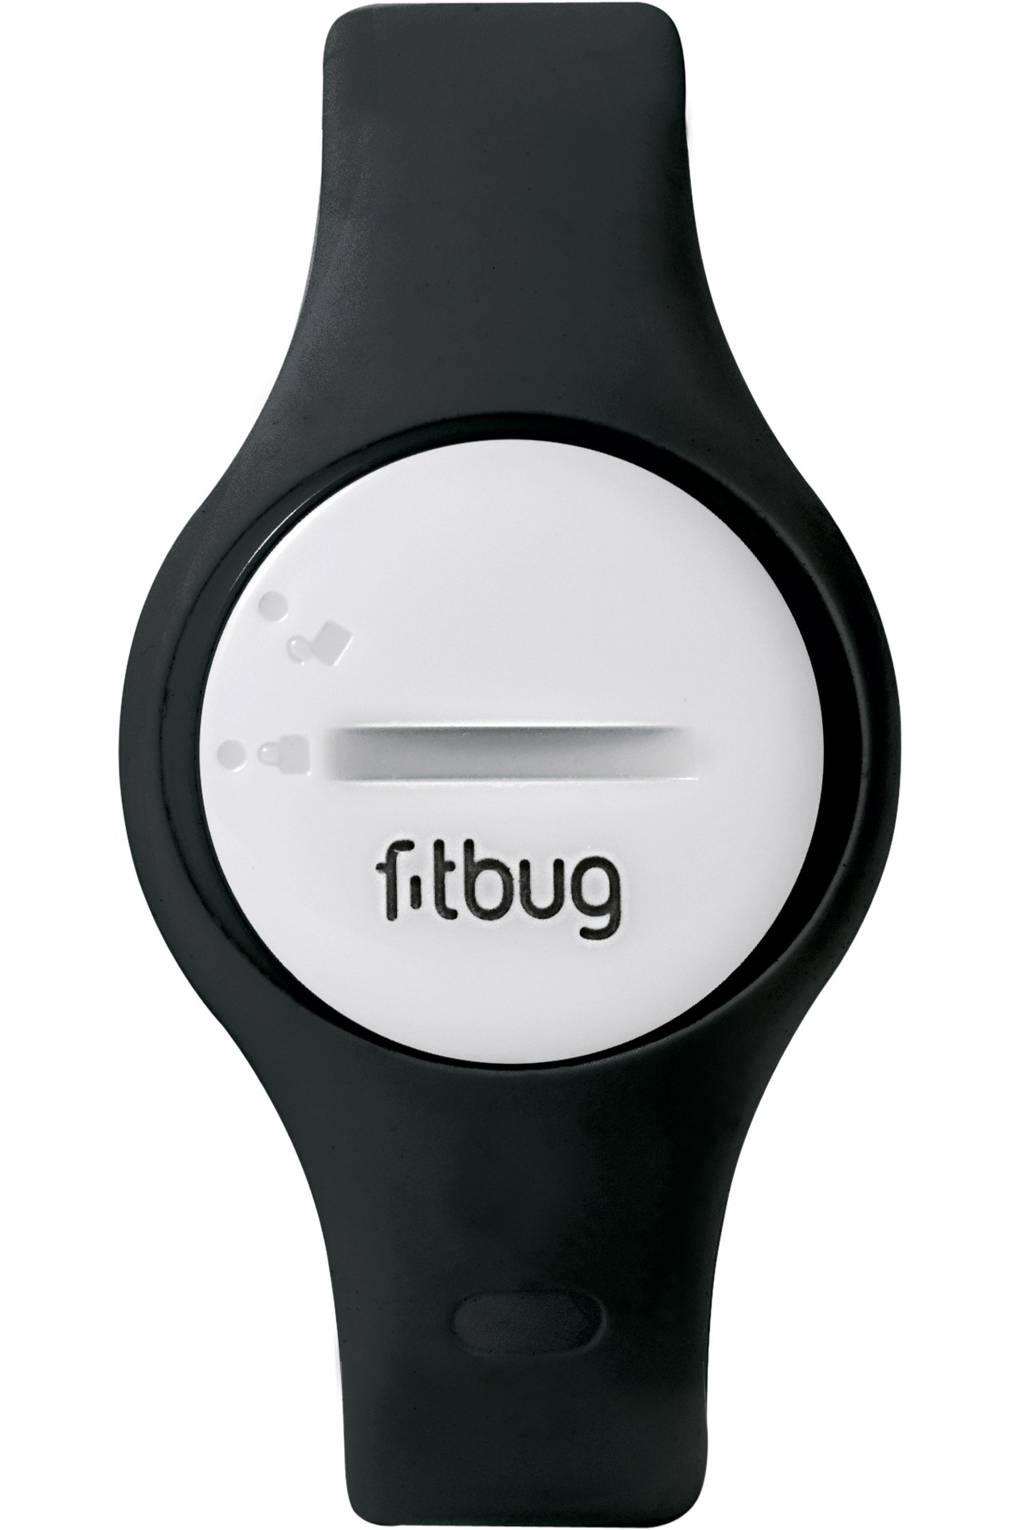 Test: best fitness monitors reviewed and rated | WIRED UK